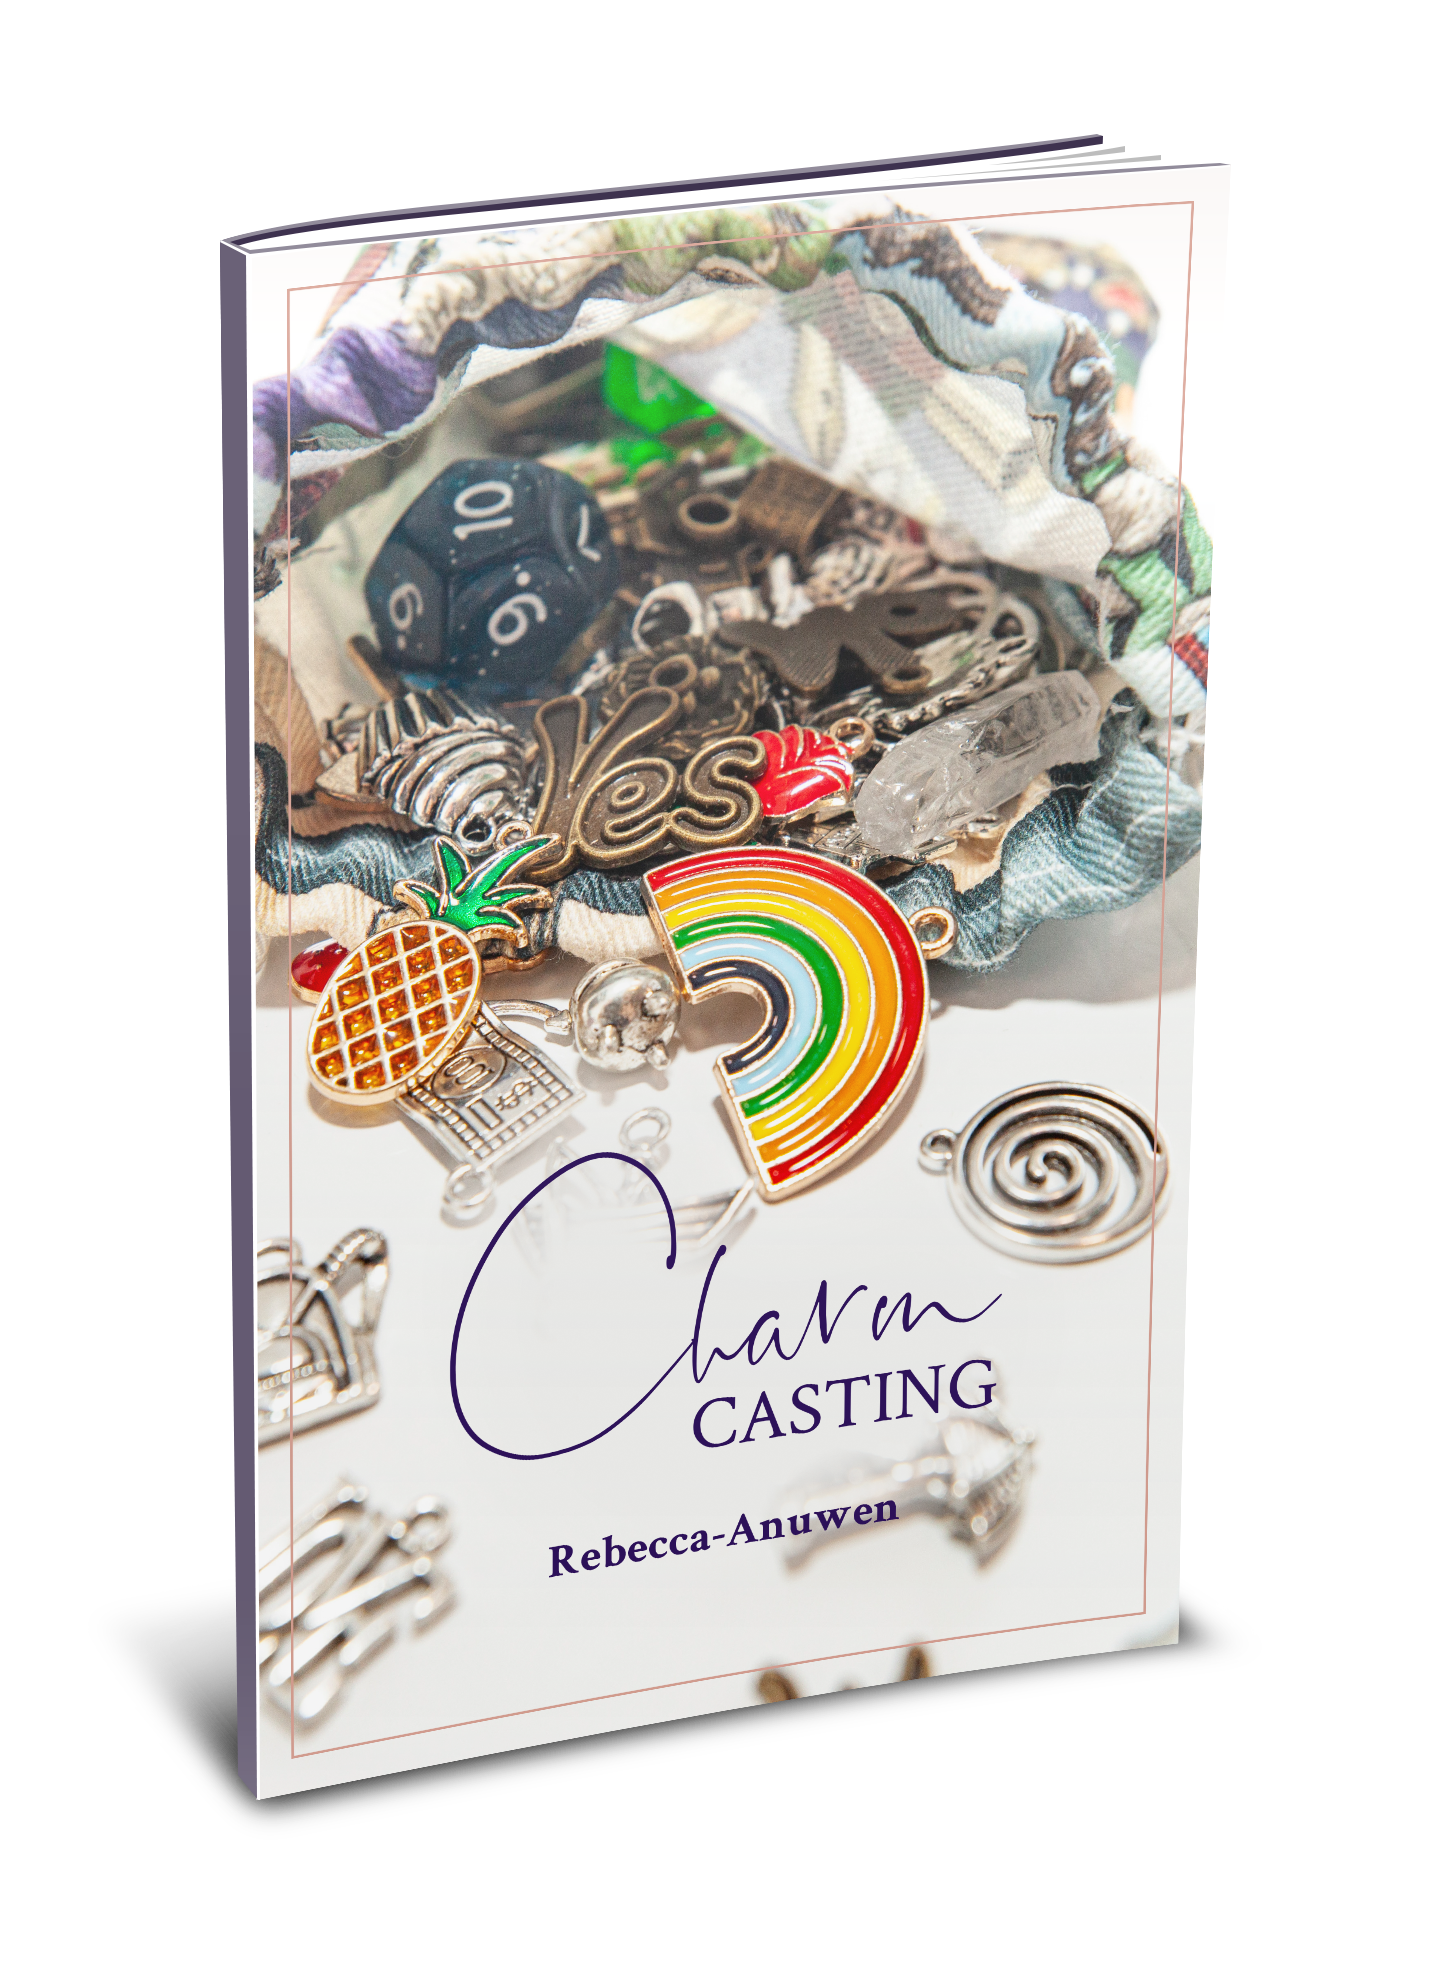 Charm casting book by Rebecca Anuwen